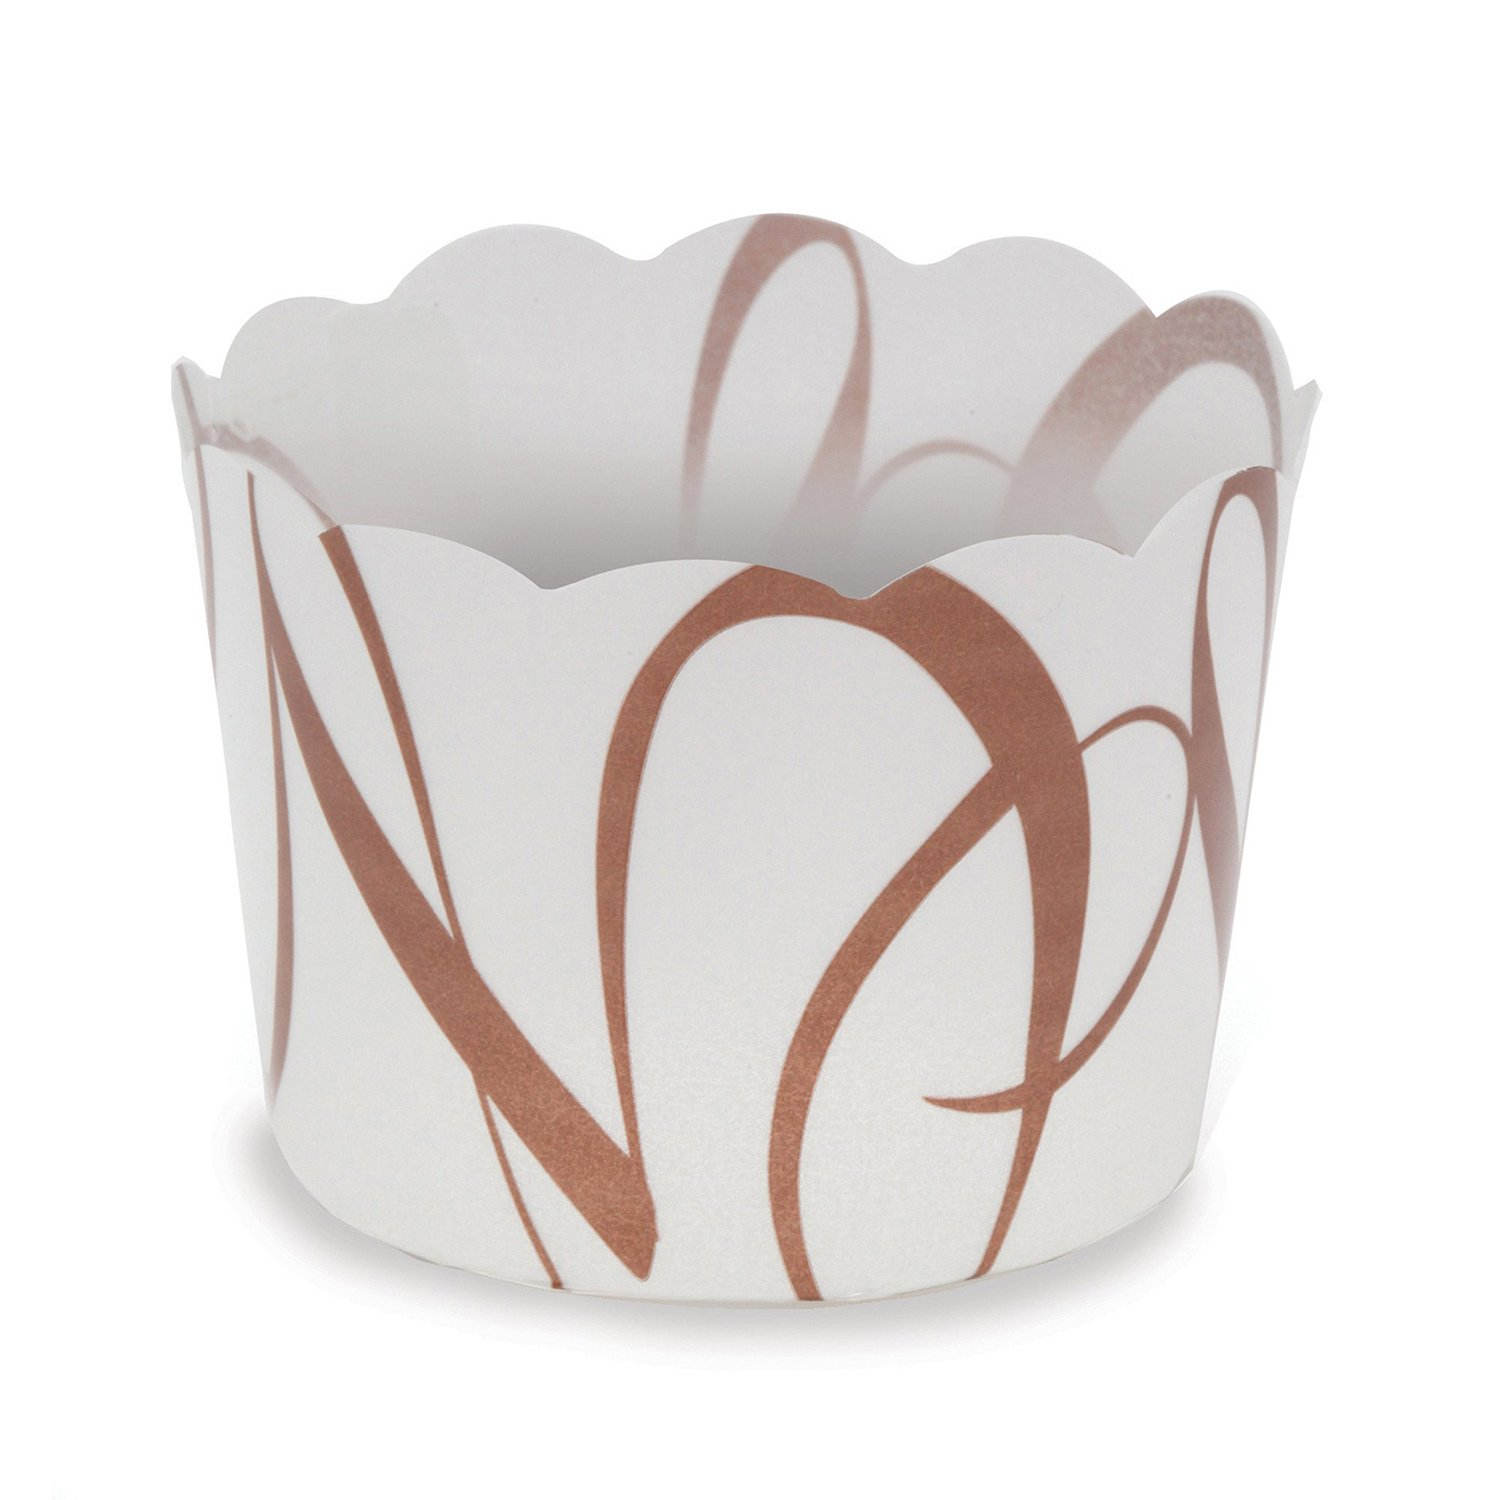 Welcome Home Brands White-with-Brown-Script Plastic Baking Cup 1.7 Inch Diameter x 1.4 Inch High - Pack of 100